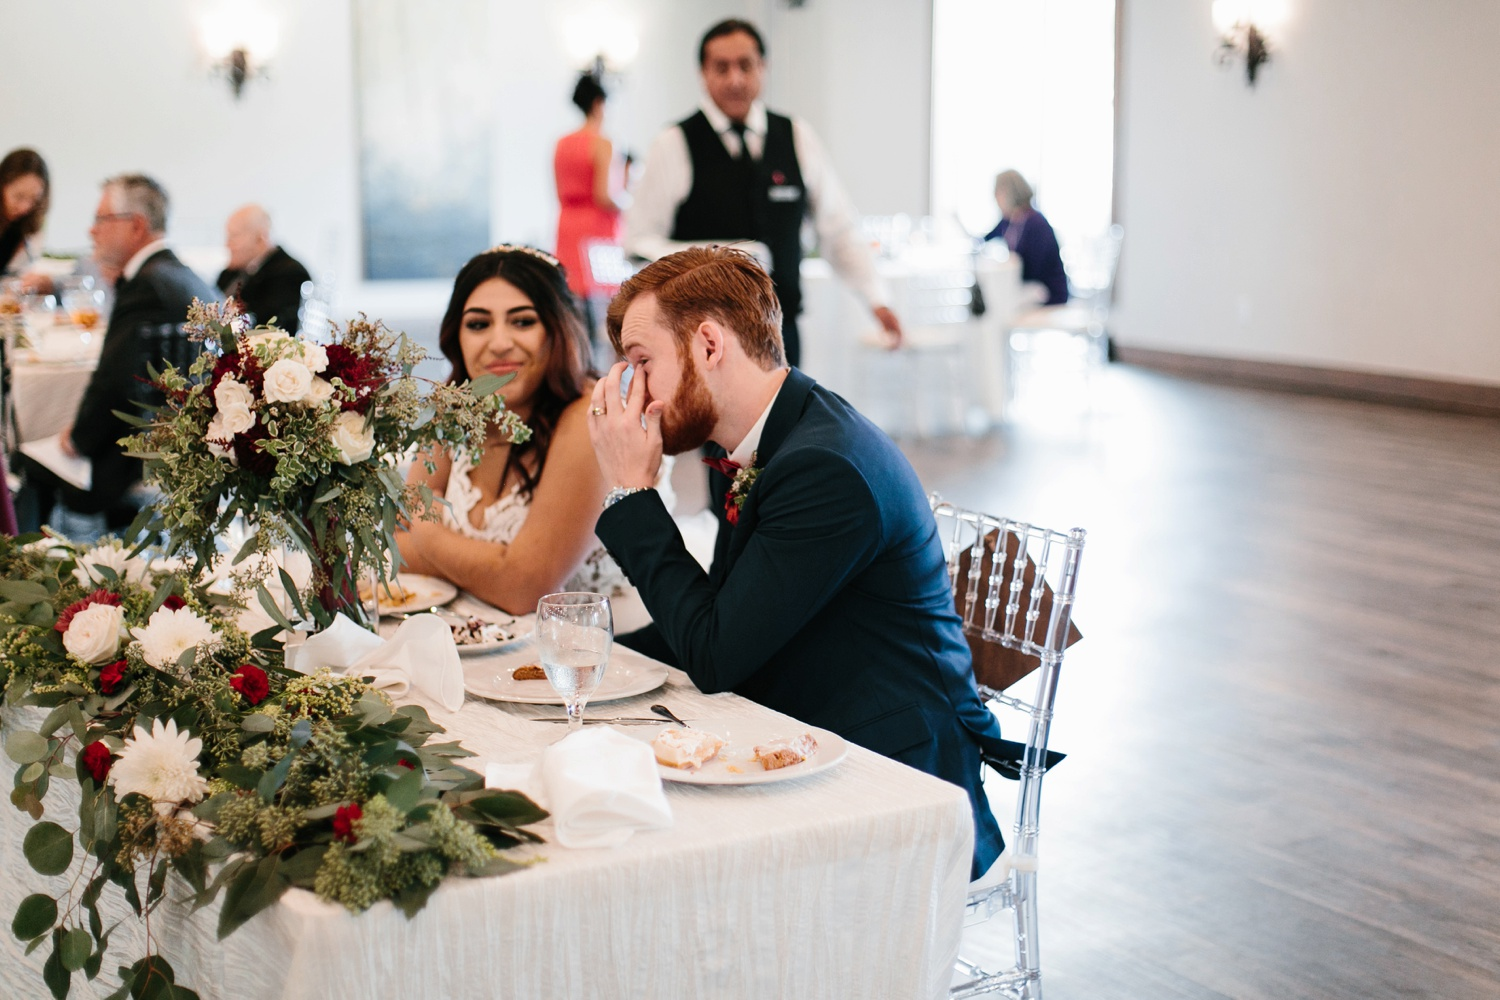 Grant + Lysette | a vibrant, deep burgundy and navy, and mixed metals wedding at Hidden Pines Chapel by North Texas Wedding Photographer Rachel Meagan Photography 150